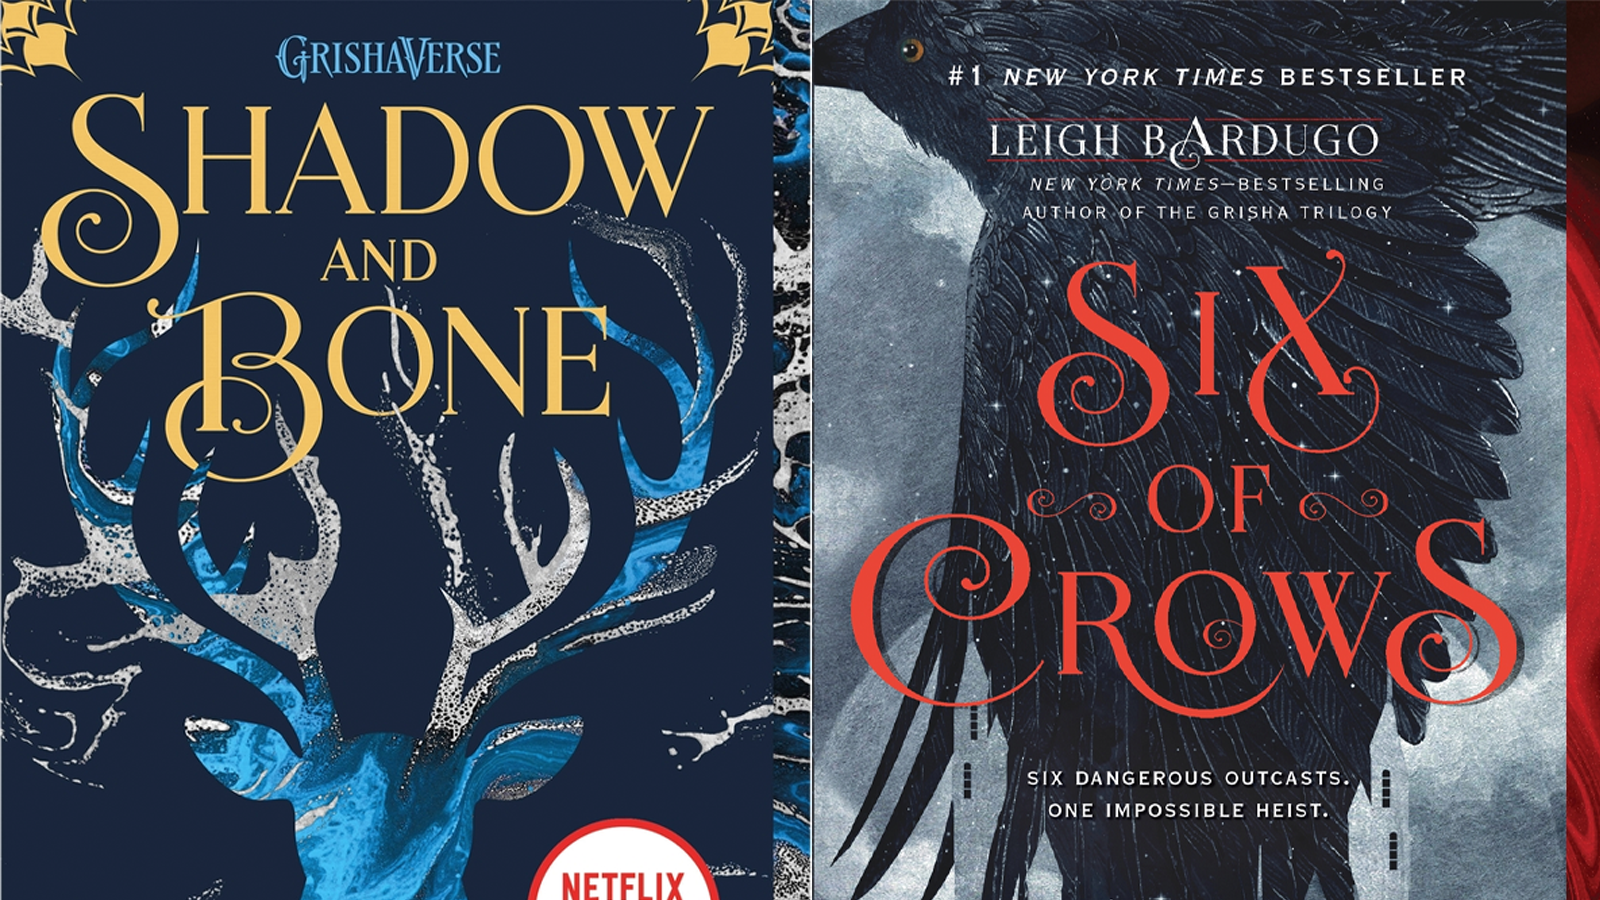 Shadow and Bone and Six of Crows book covers